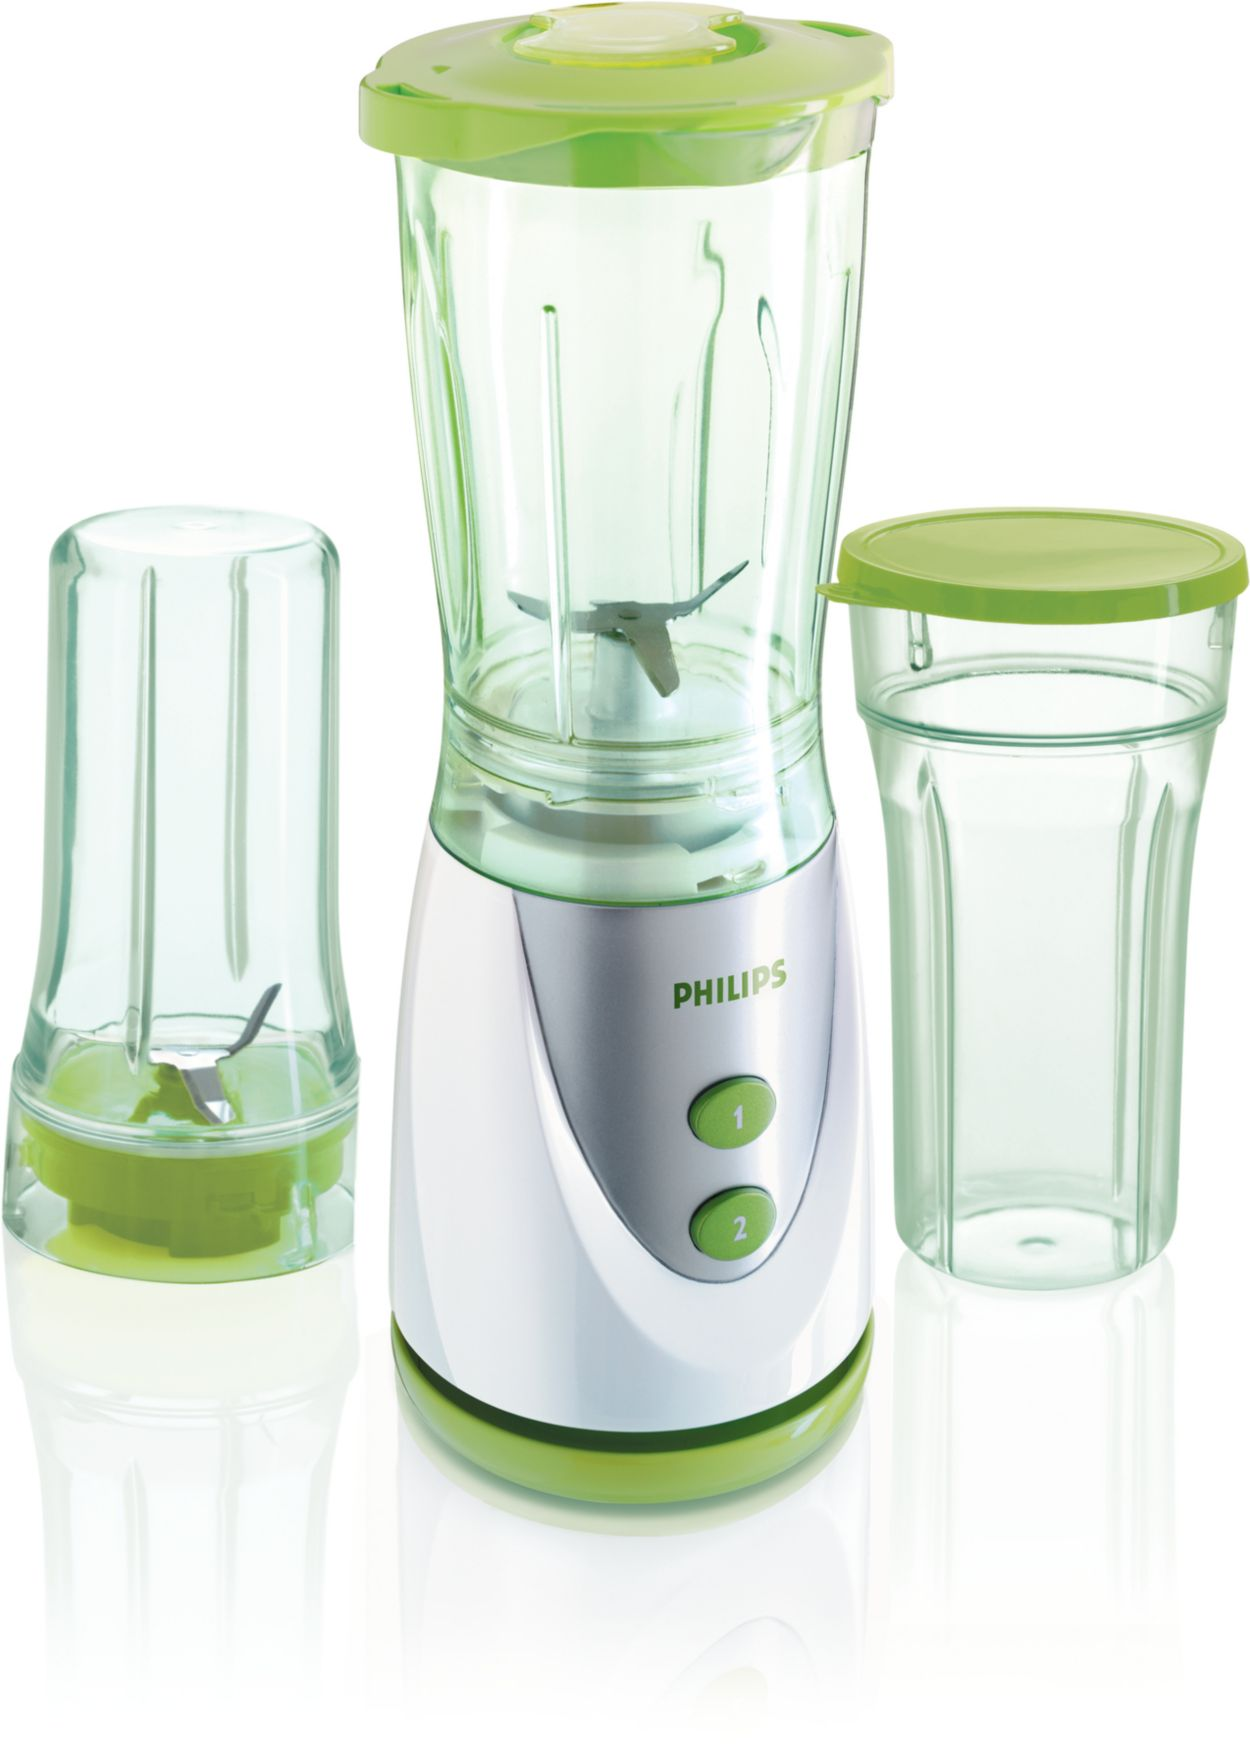 Mini blender HR2870/60 | Philips